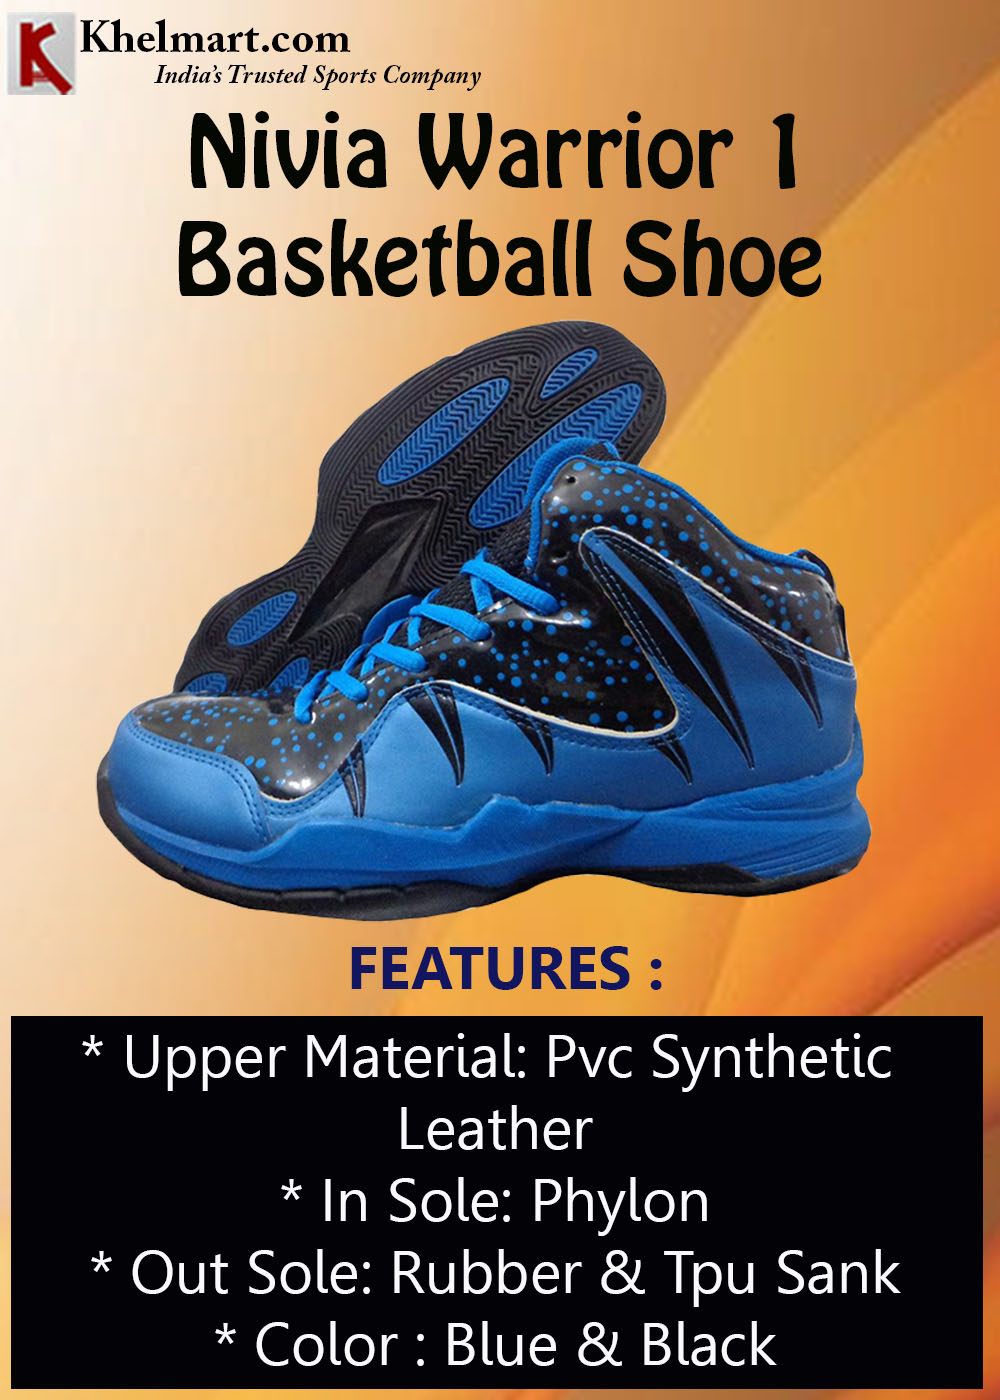 Nivia Warrior 1 Basketball Shoe